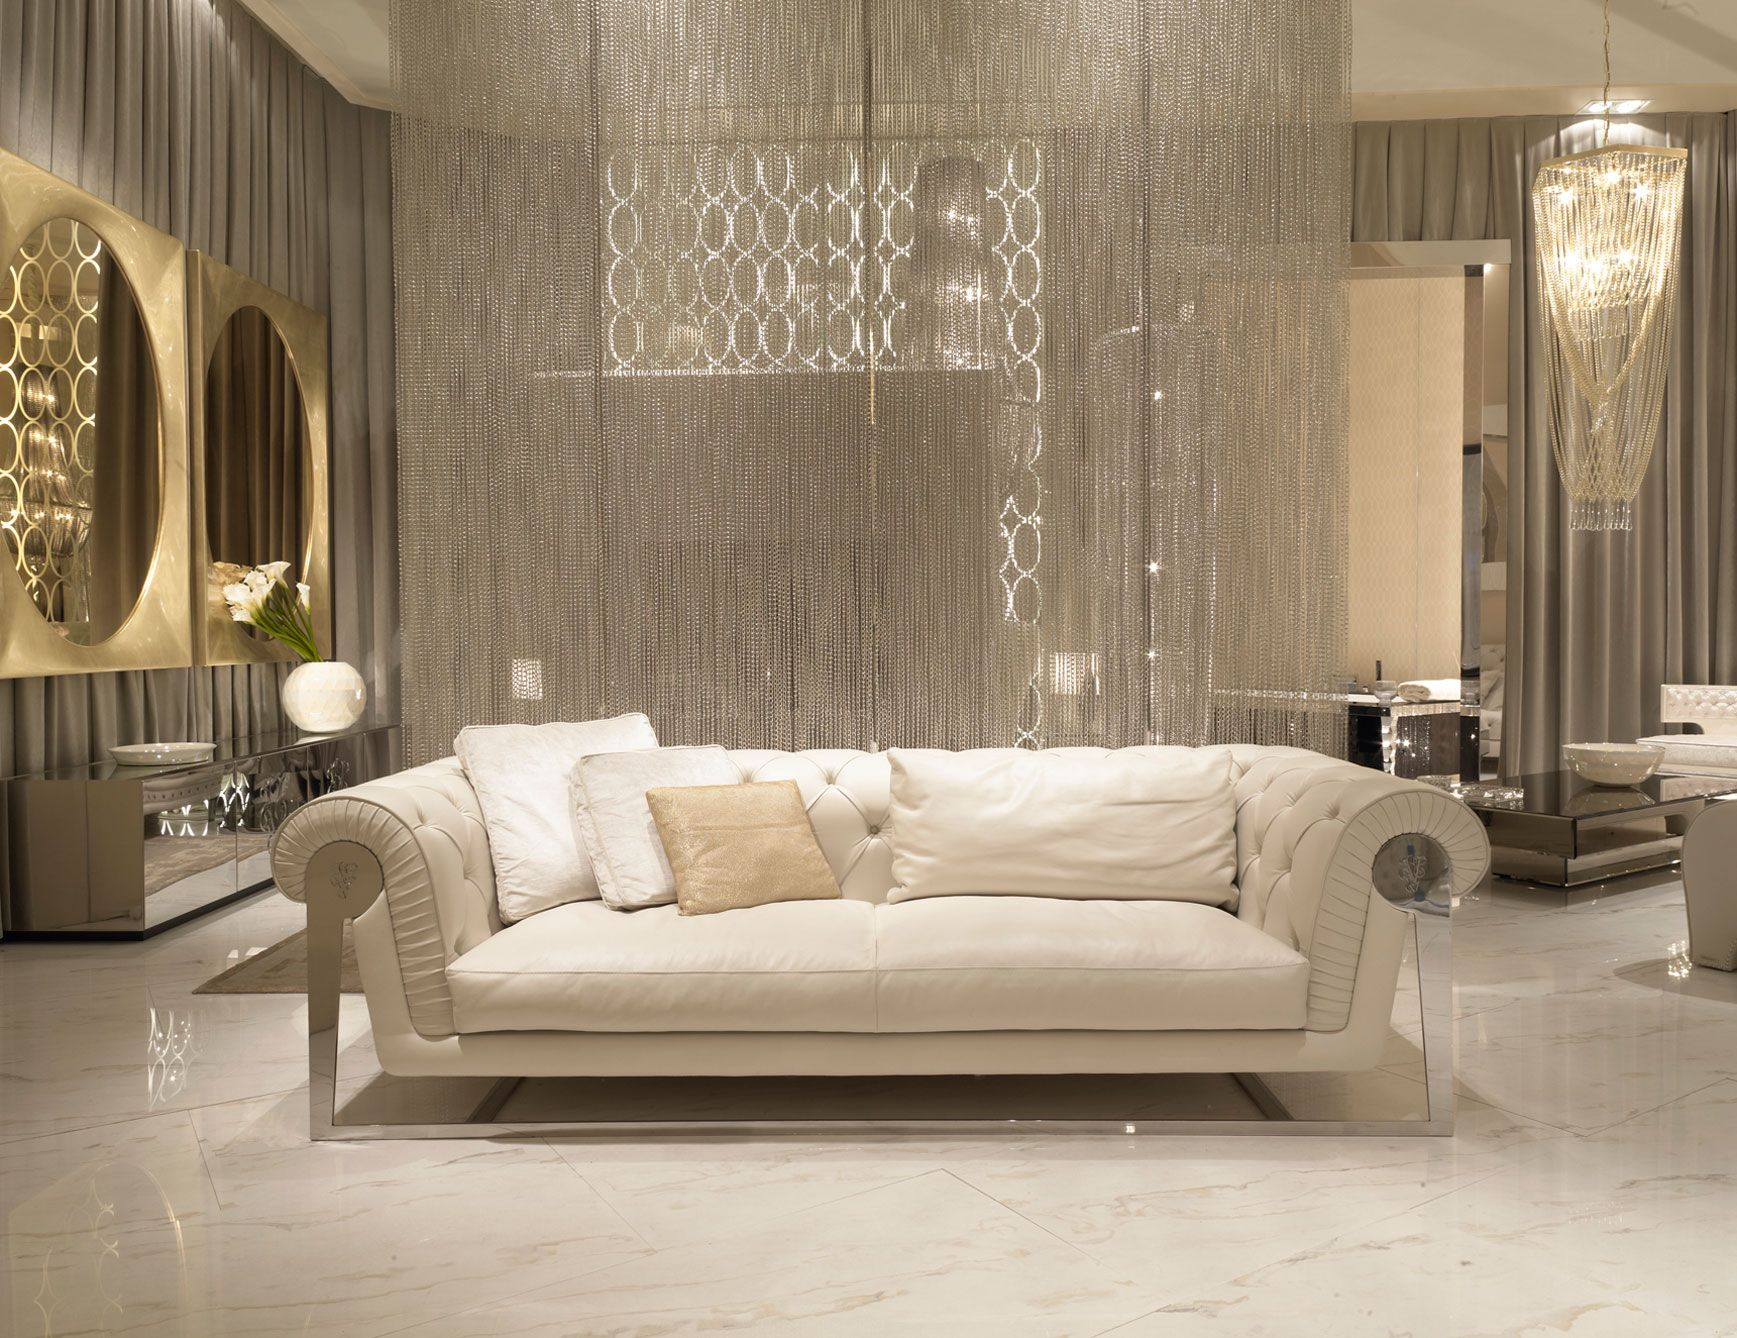 Classic Italian Off White Leather Living Room Sofas | Luxury Home Interior  Design Beautiful Italian Sofas Awesome Chandelier